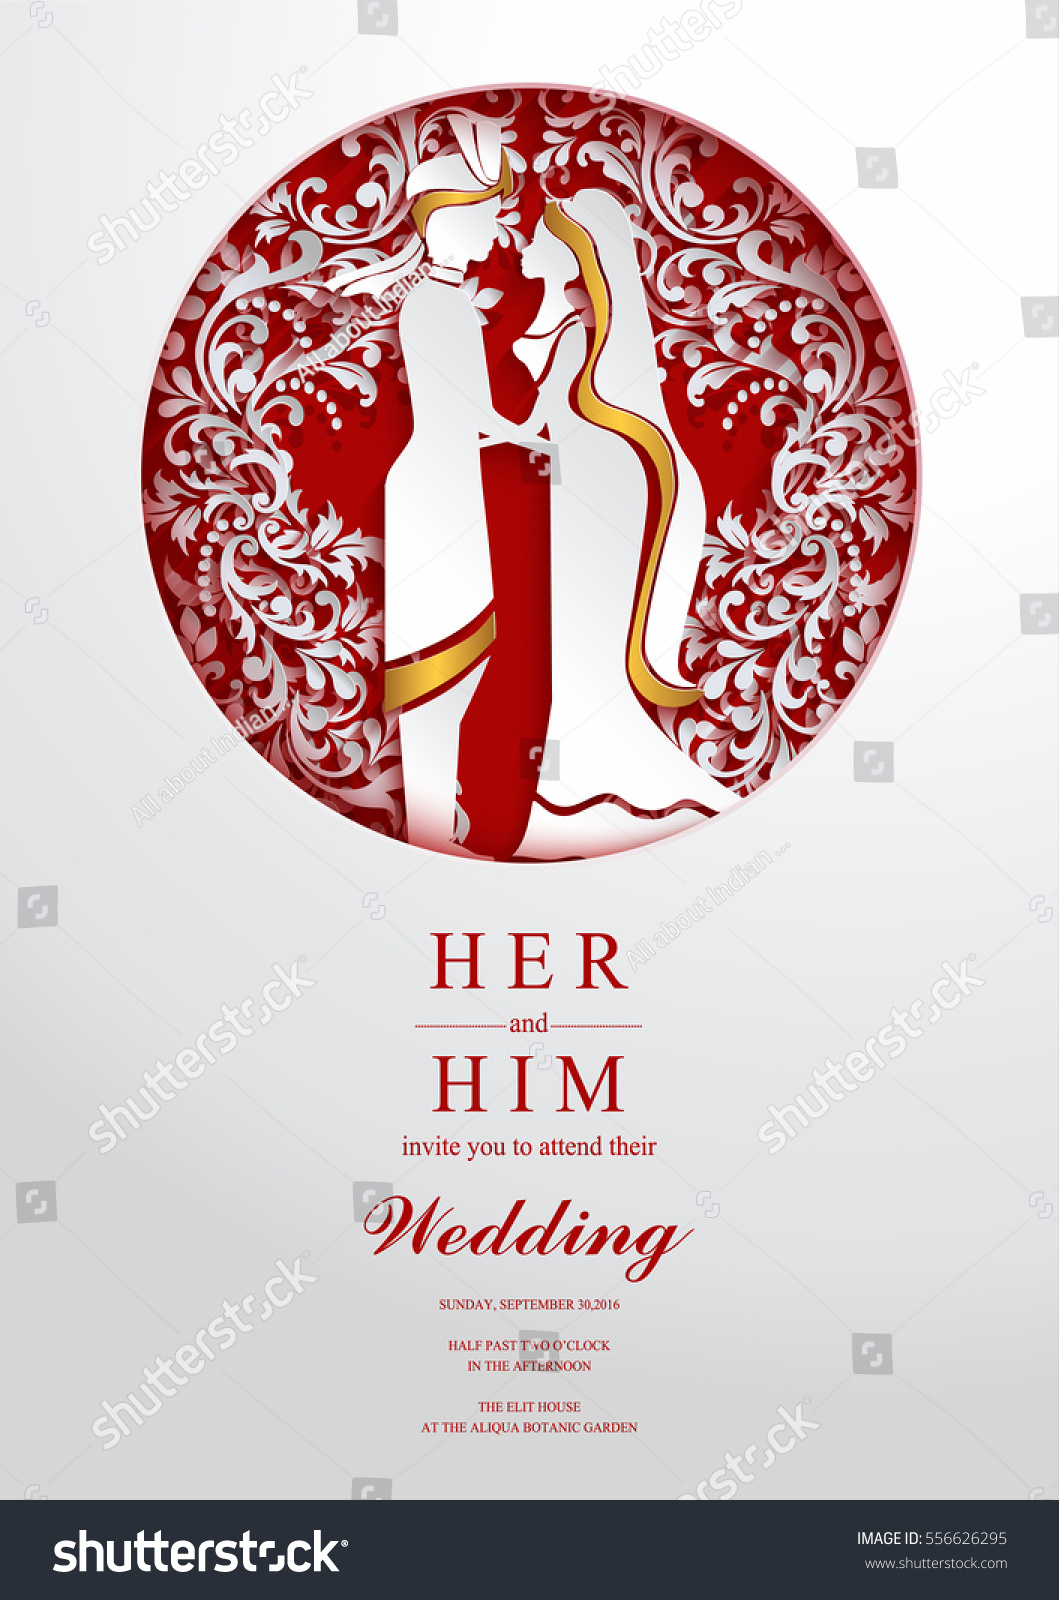 Indian Wedding Invitation Card Templates Paper Stock Vector ...